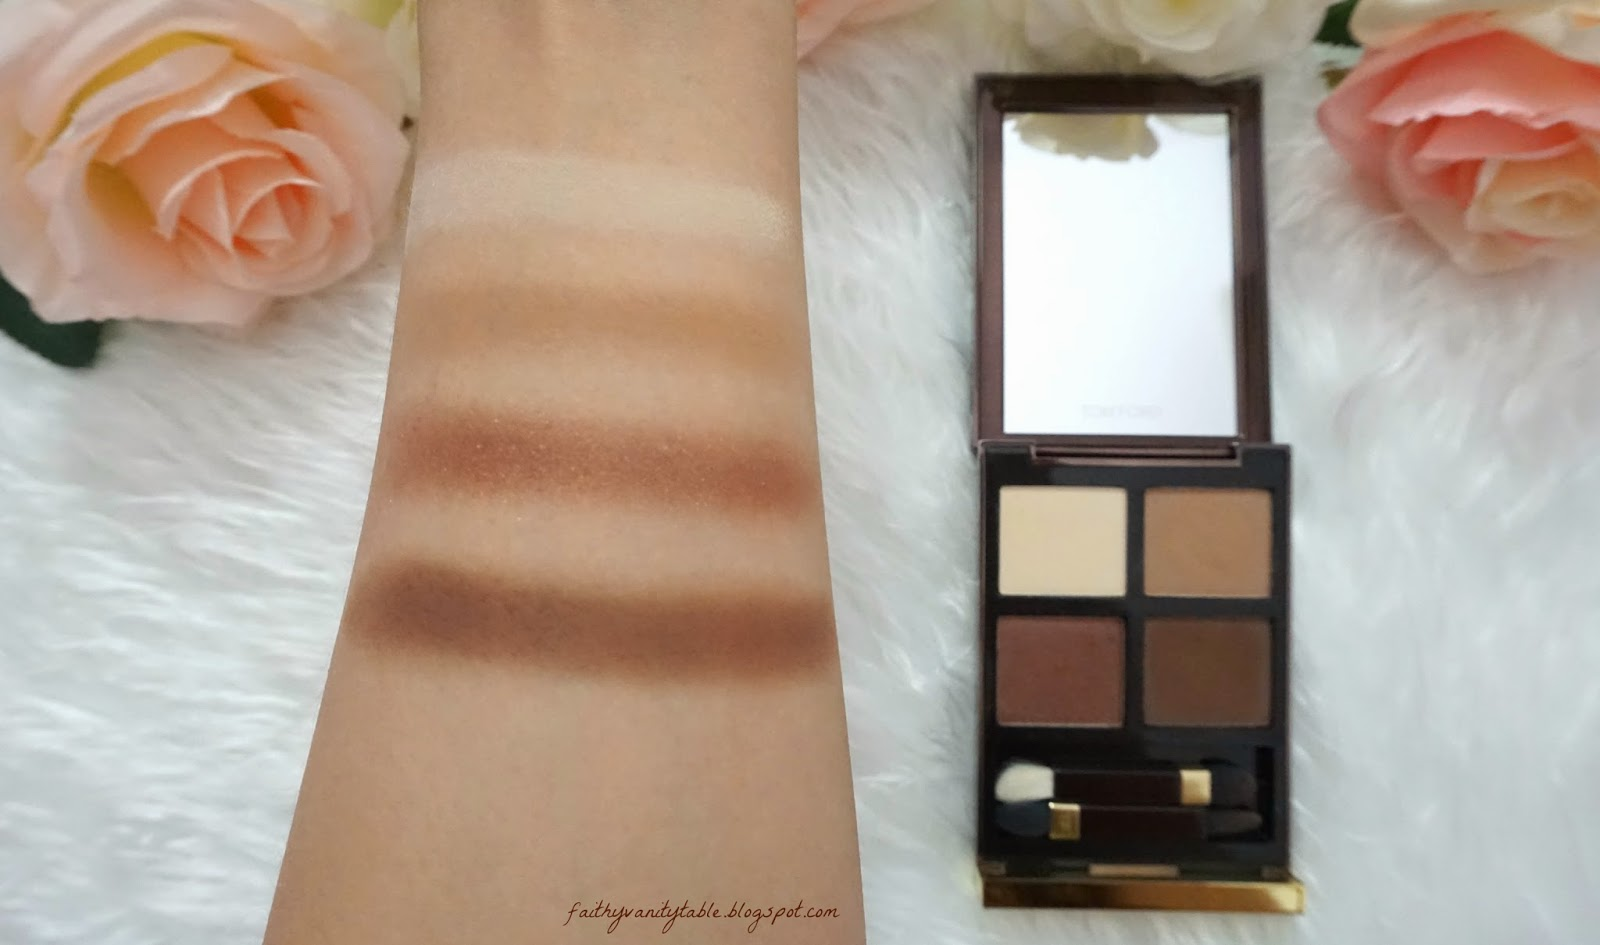 Swatches of Tom Ford Eyeshadow Quad, Cocoa Mirage